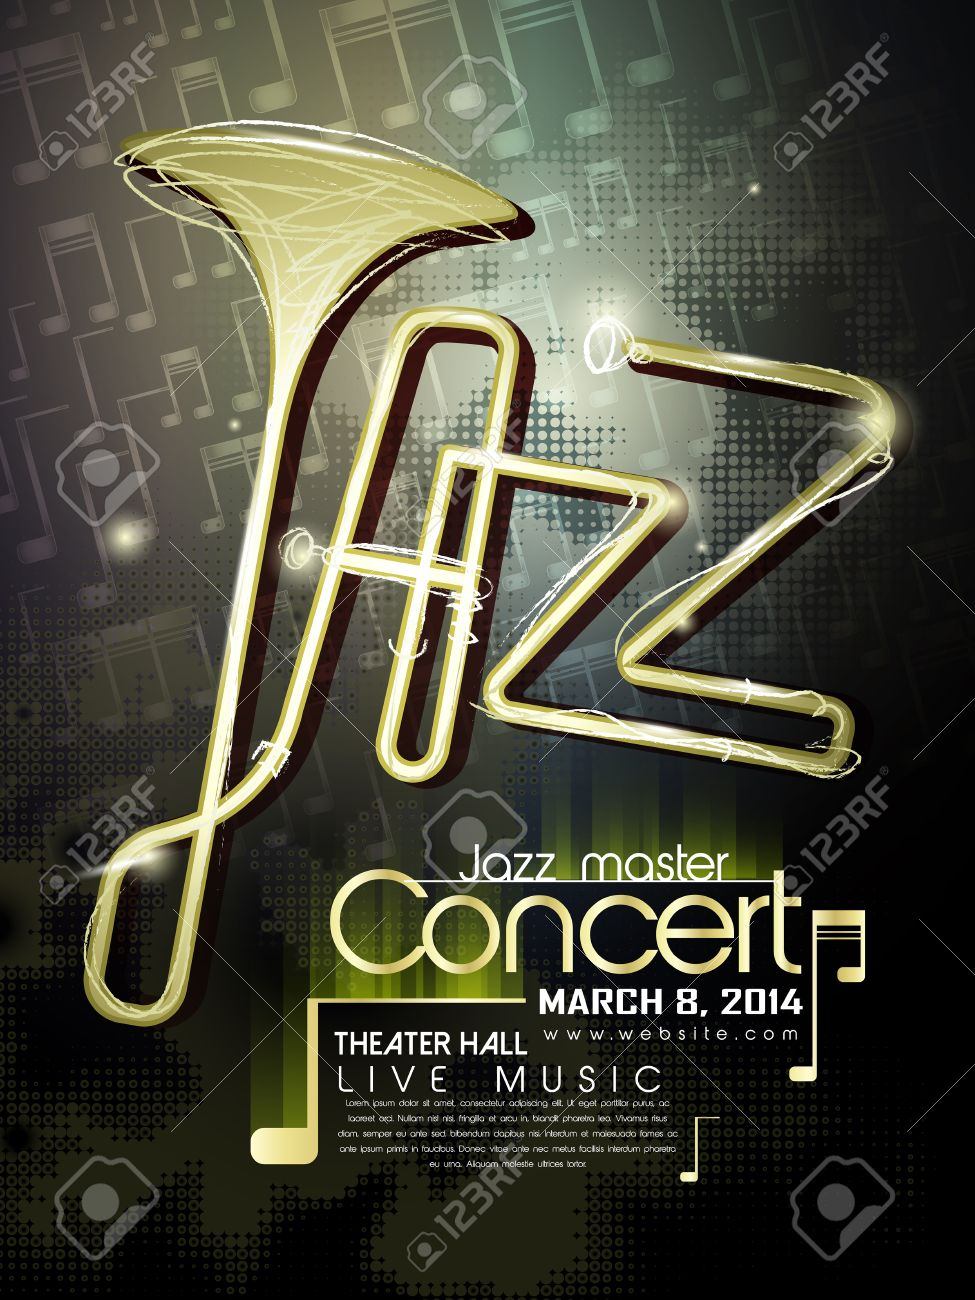 jazz concert poster template with trumpet and notes elements Stock Vector - 30288853